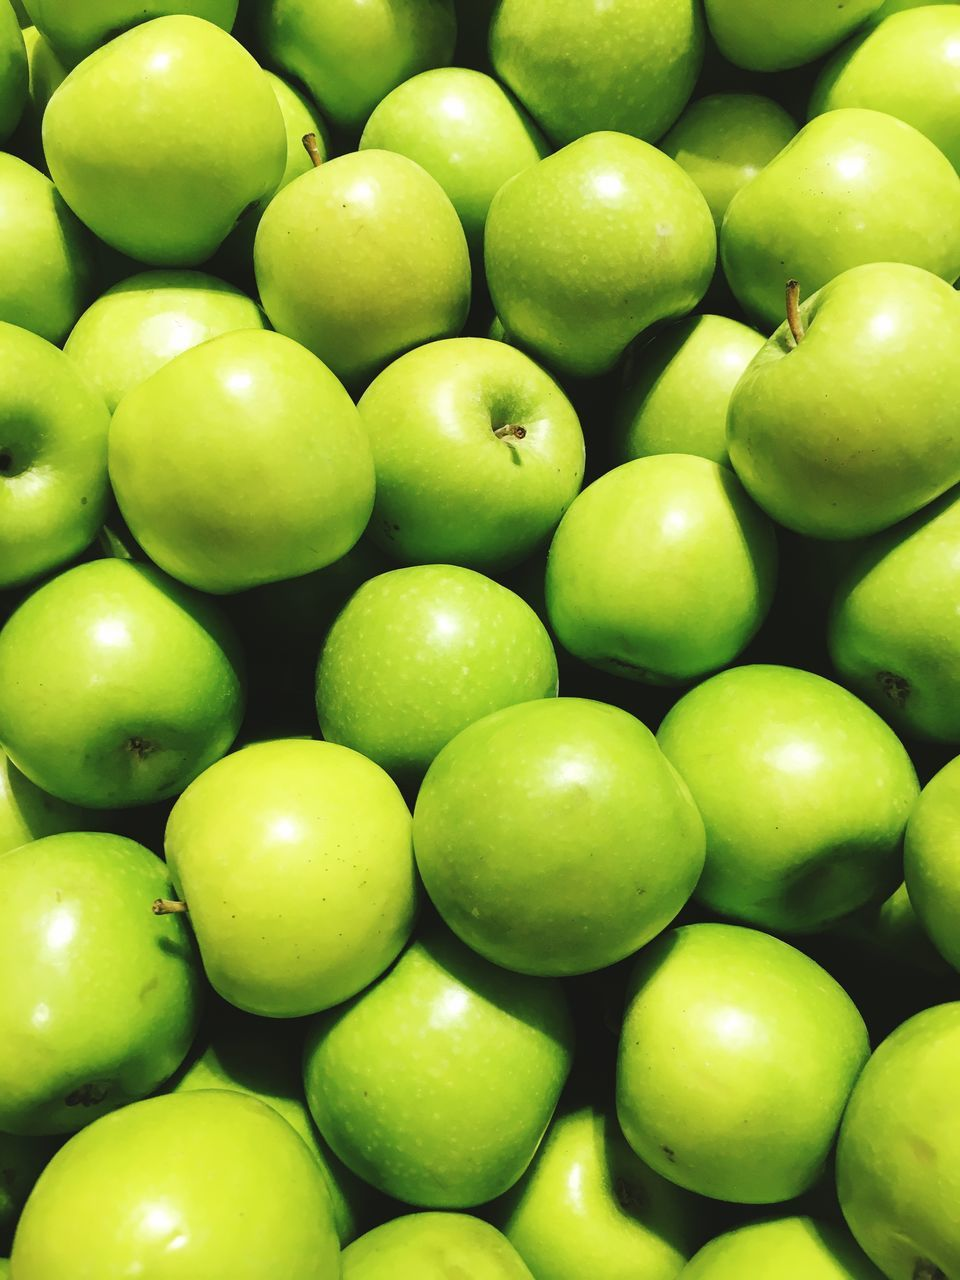 fruit, green color, healthy eating, full frame, abundance, backgrounds, food, food and drink, large group of objects, freshness, no people, granny smith apple, apple - fruit, day, close-up, indoors